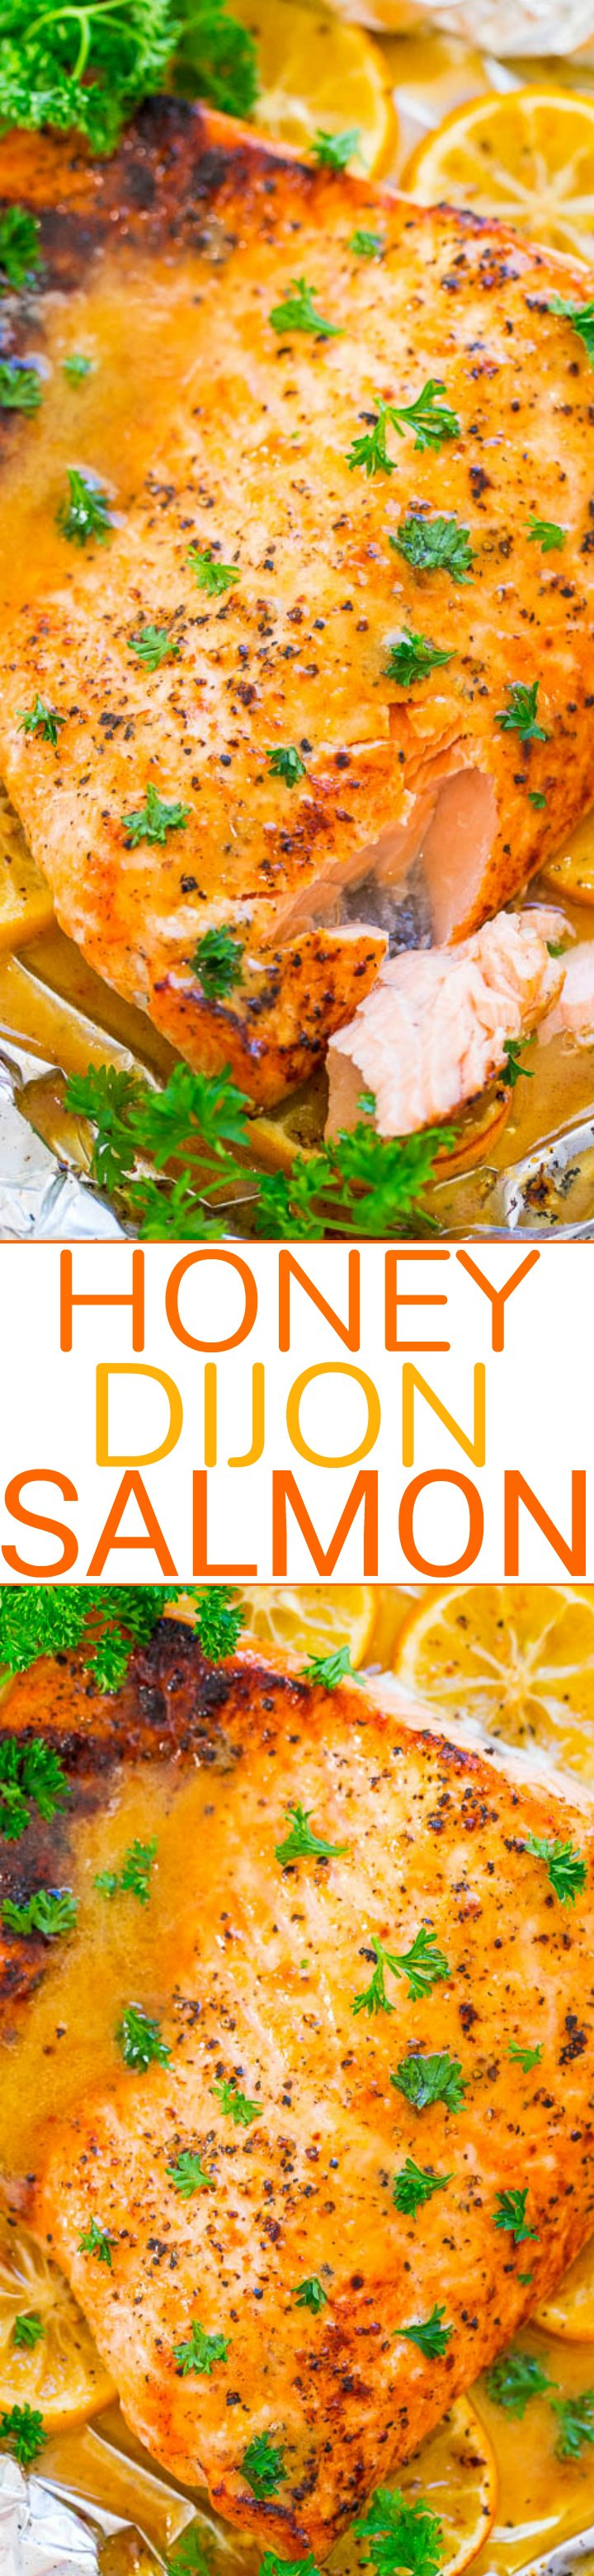 Honey Dijon Salmon - EASY, ready in 20 minutes, juicy, tender, and so FLAVORFUL from the honey, Dijon, and lemon juice!! If you're trying to incorporate more fish in your diet, this is THE RECIPE to make!!